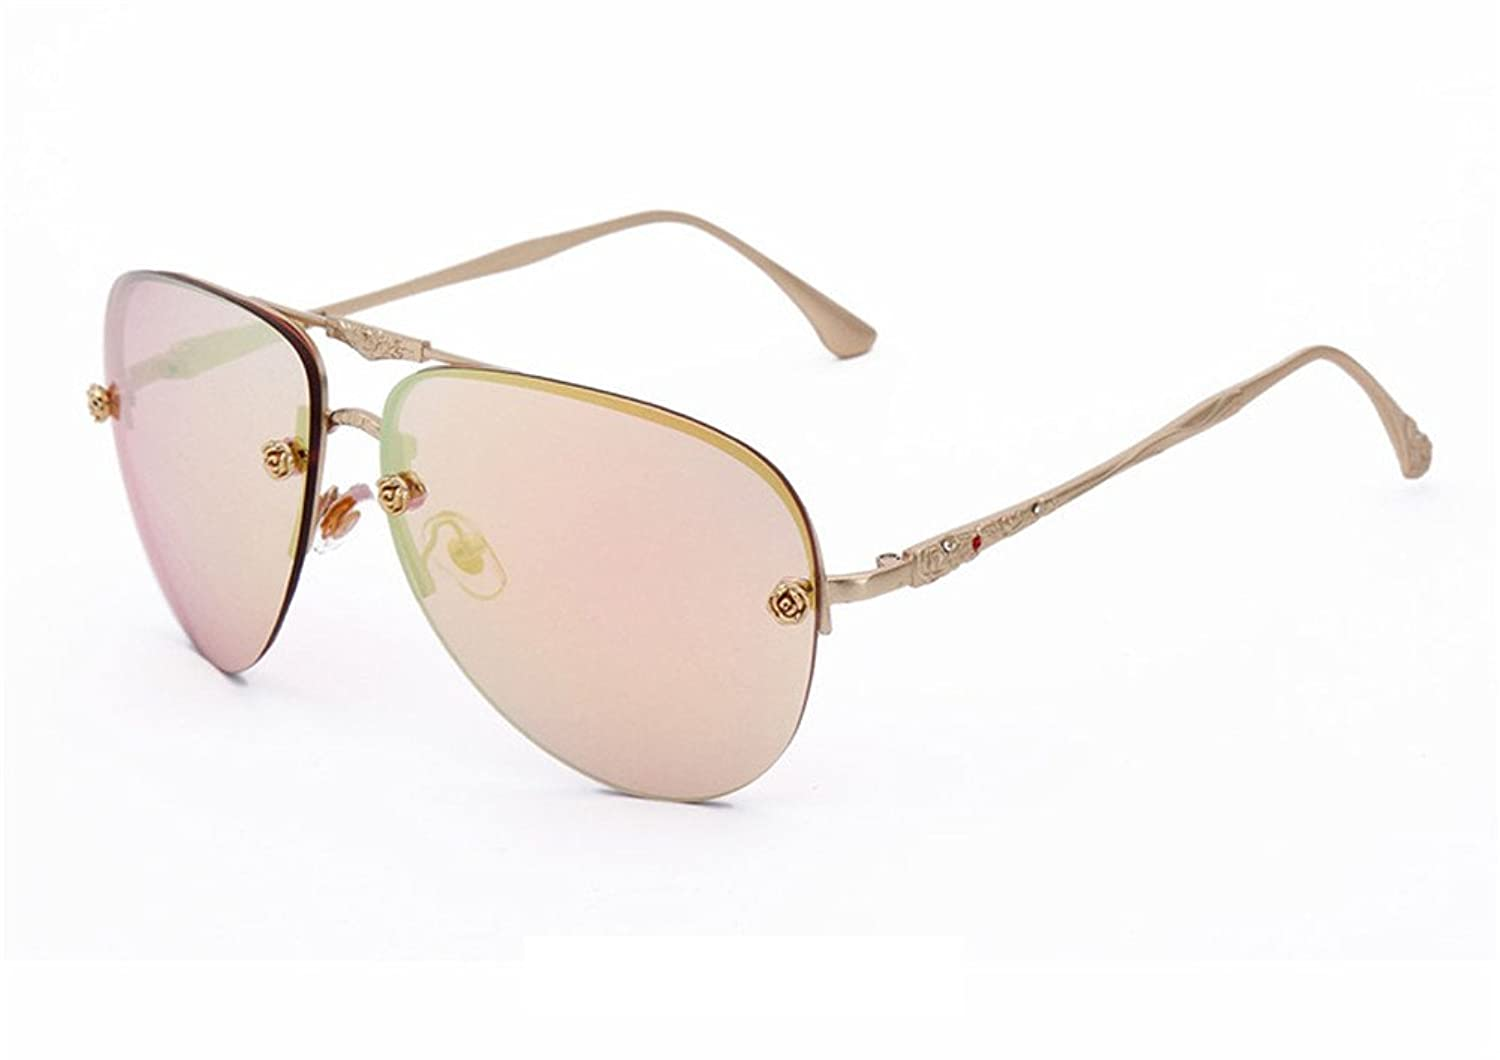 GAMT Mirrored Rimless Aviator Sunglasses Rose Decoration Sunglass